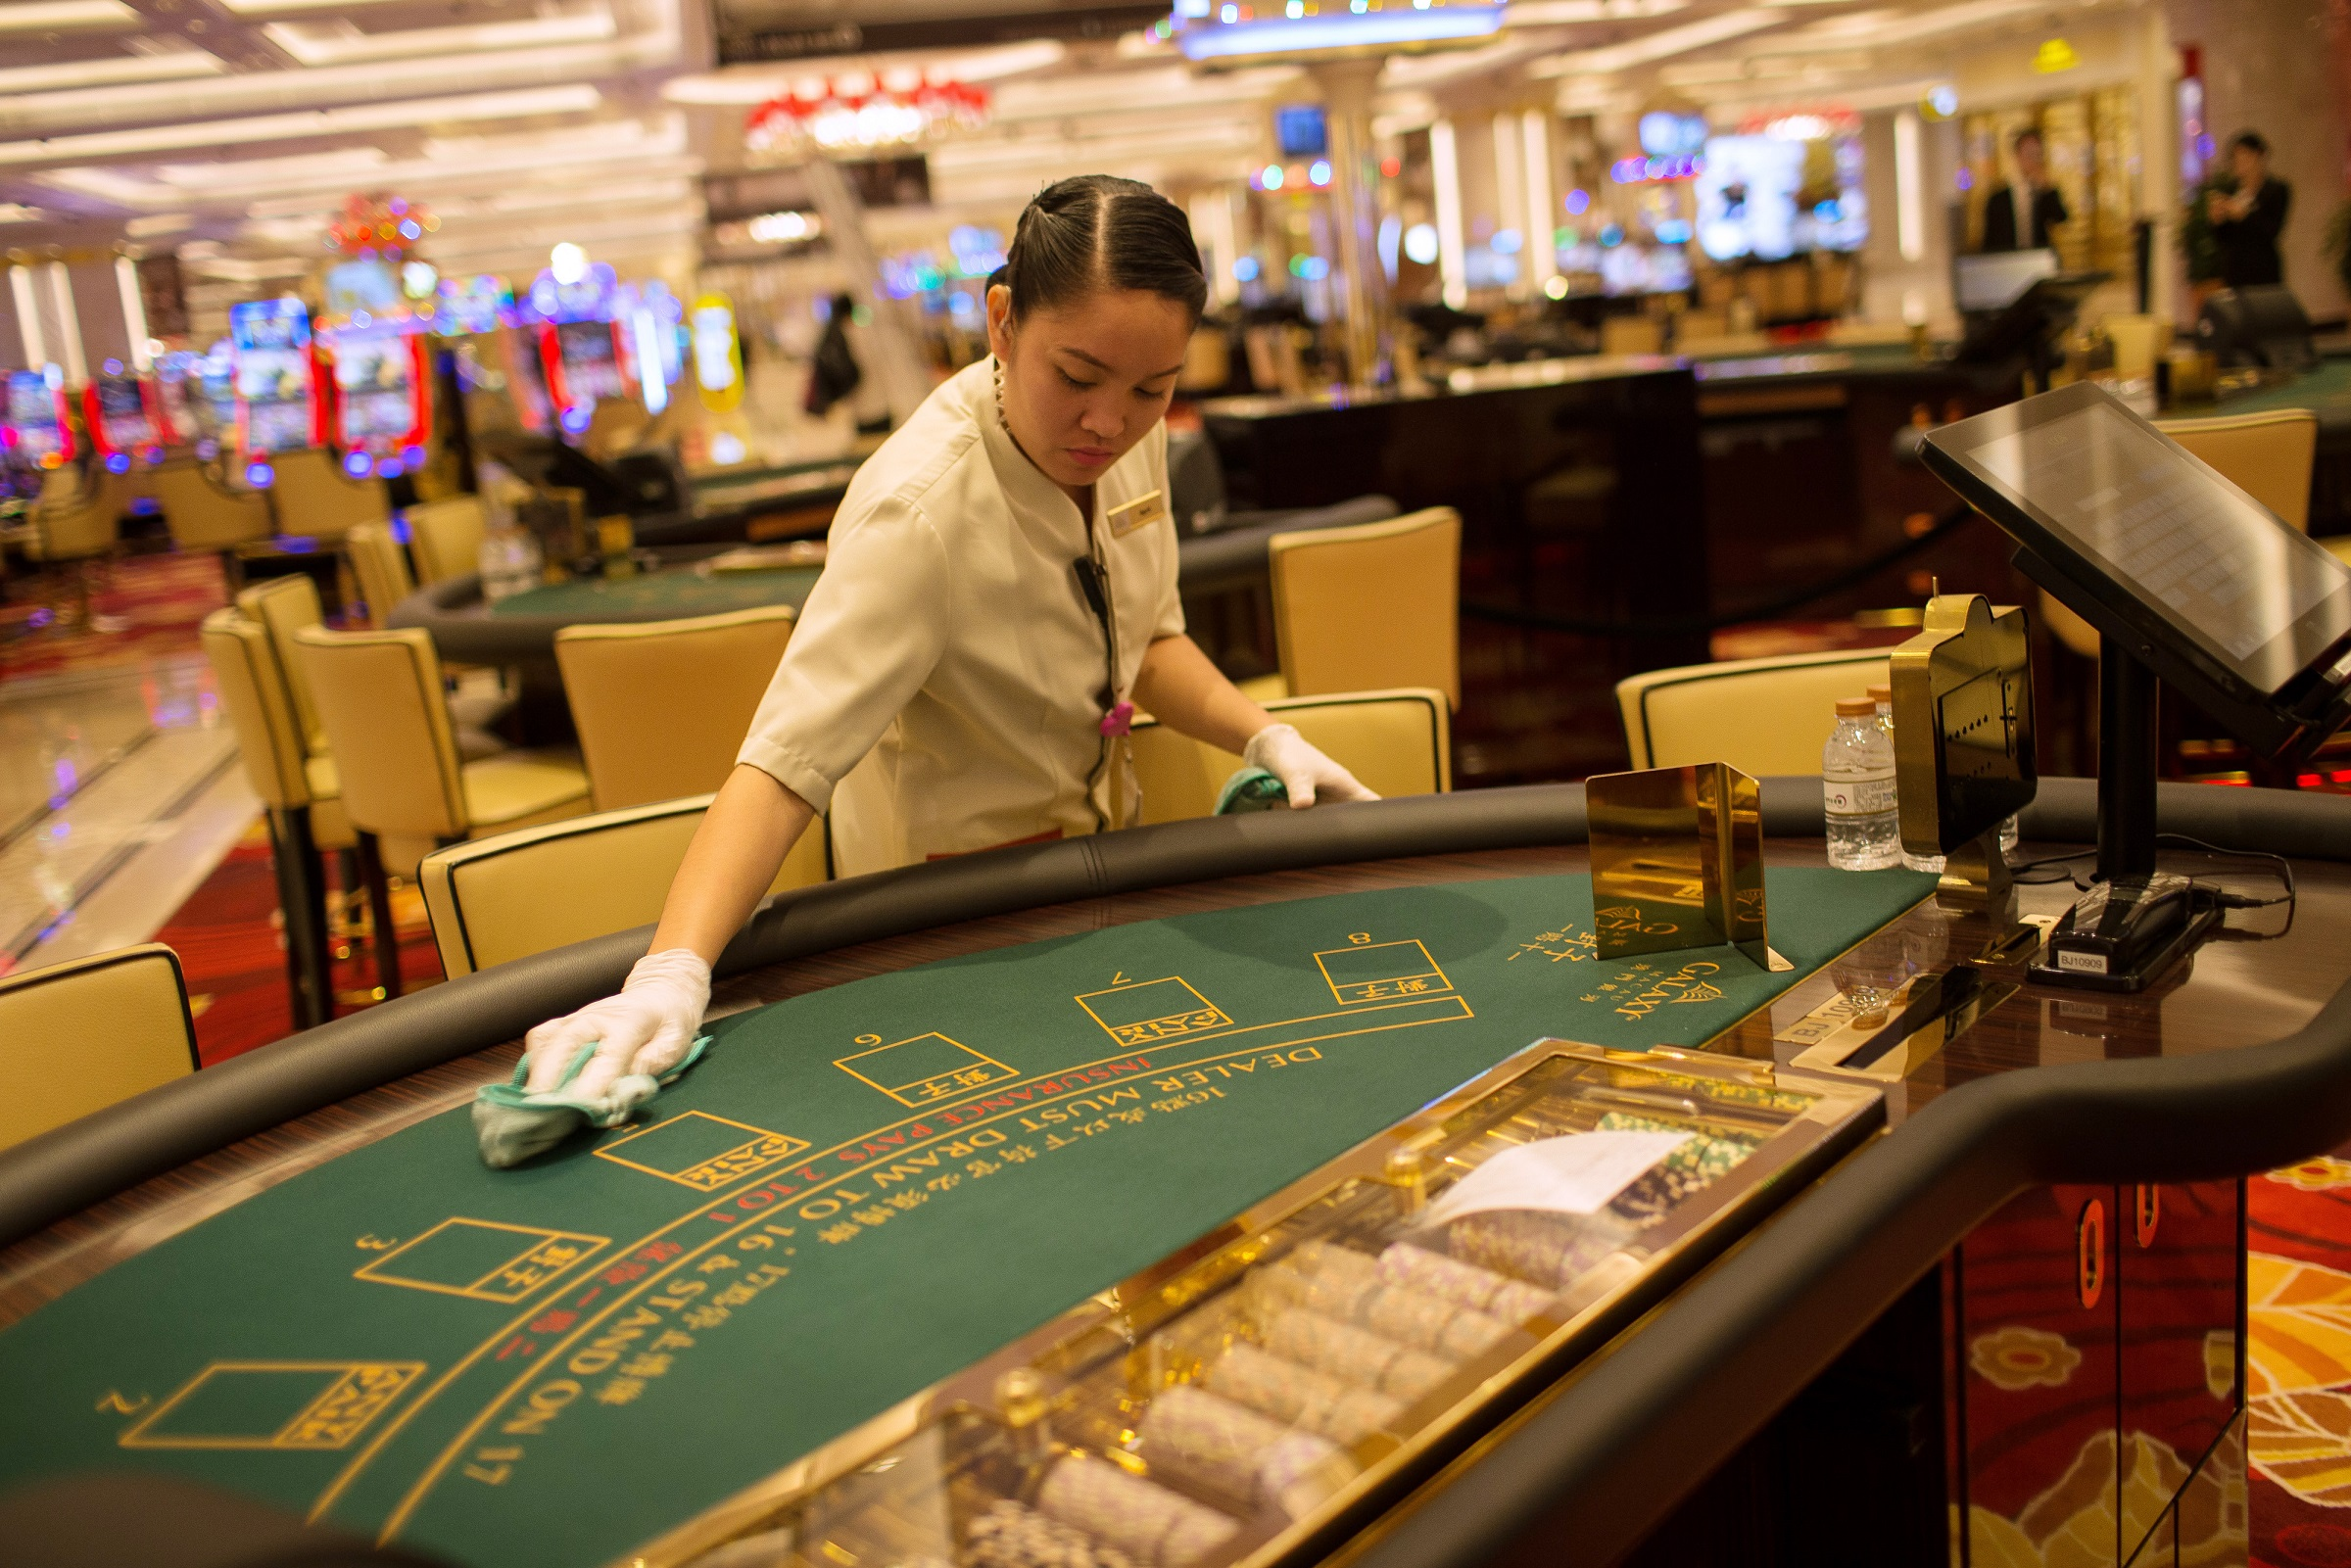 An employee cleans a blackjack table inside the Galaxy Macau Phase 2 casino, developed by Galaxy Entertainment Group Ltd., ahead of its opening in Macau, China, on Wednesday, May 27, 2015. Galaxy is opening Macau's first projects in three years with a concert from Chinese singer Alan Tam, as the casino operator tries to broaden its appeal beyond hardcore gamblers to families and tourists. Photographer: Billy H.C. Kwok/Bloomberg